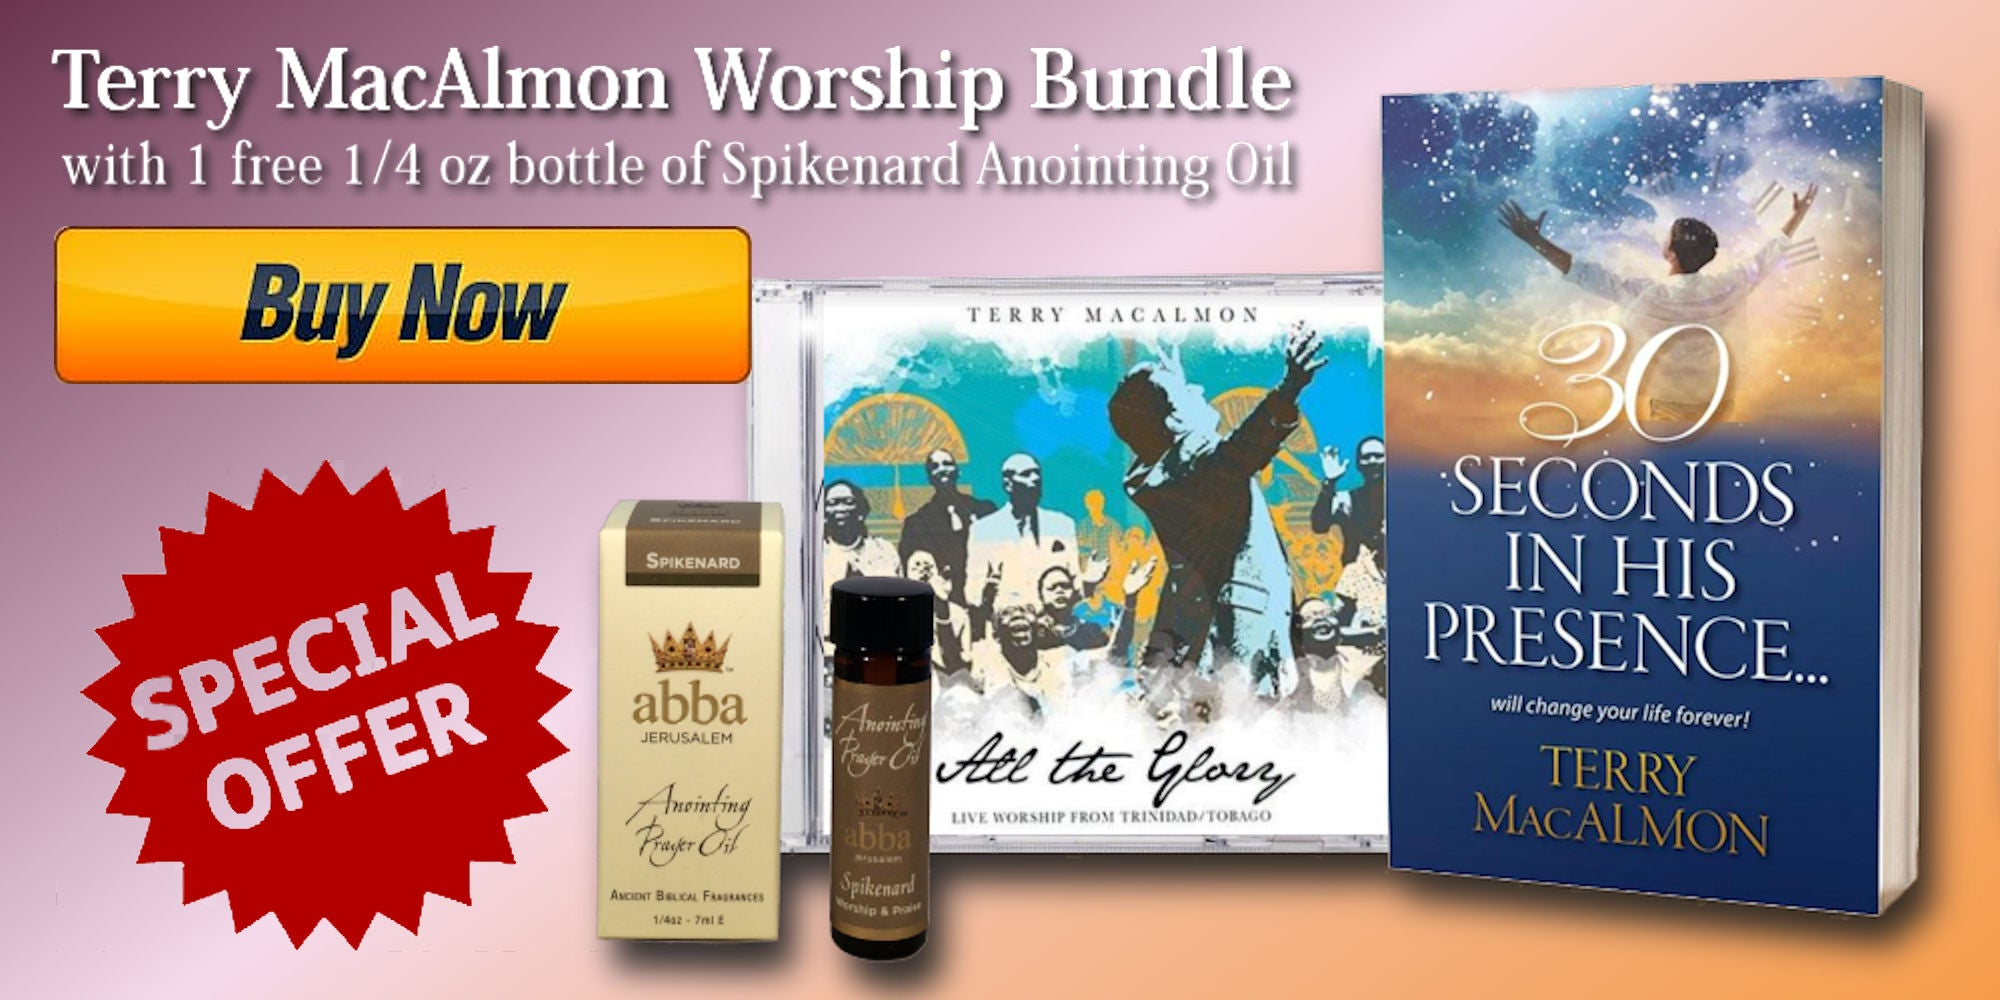 Terry MacAlmon Worship Bundle - Abba Oil